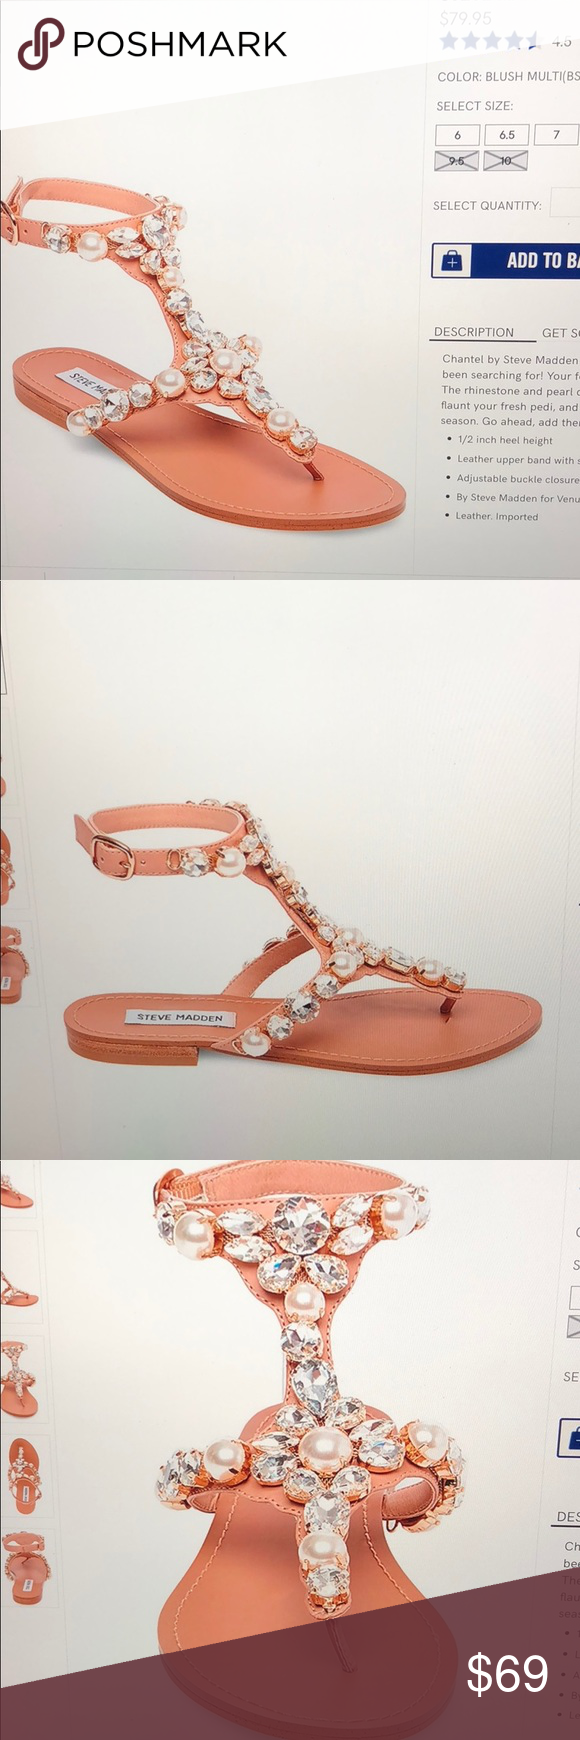 176971bc8d73 Steve Madden crystal embellished sandal Only worn once. These sandals are  elegant and very stylish